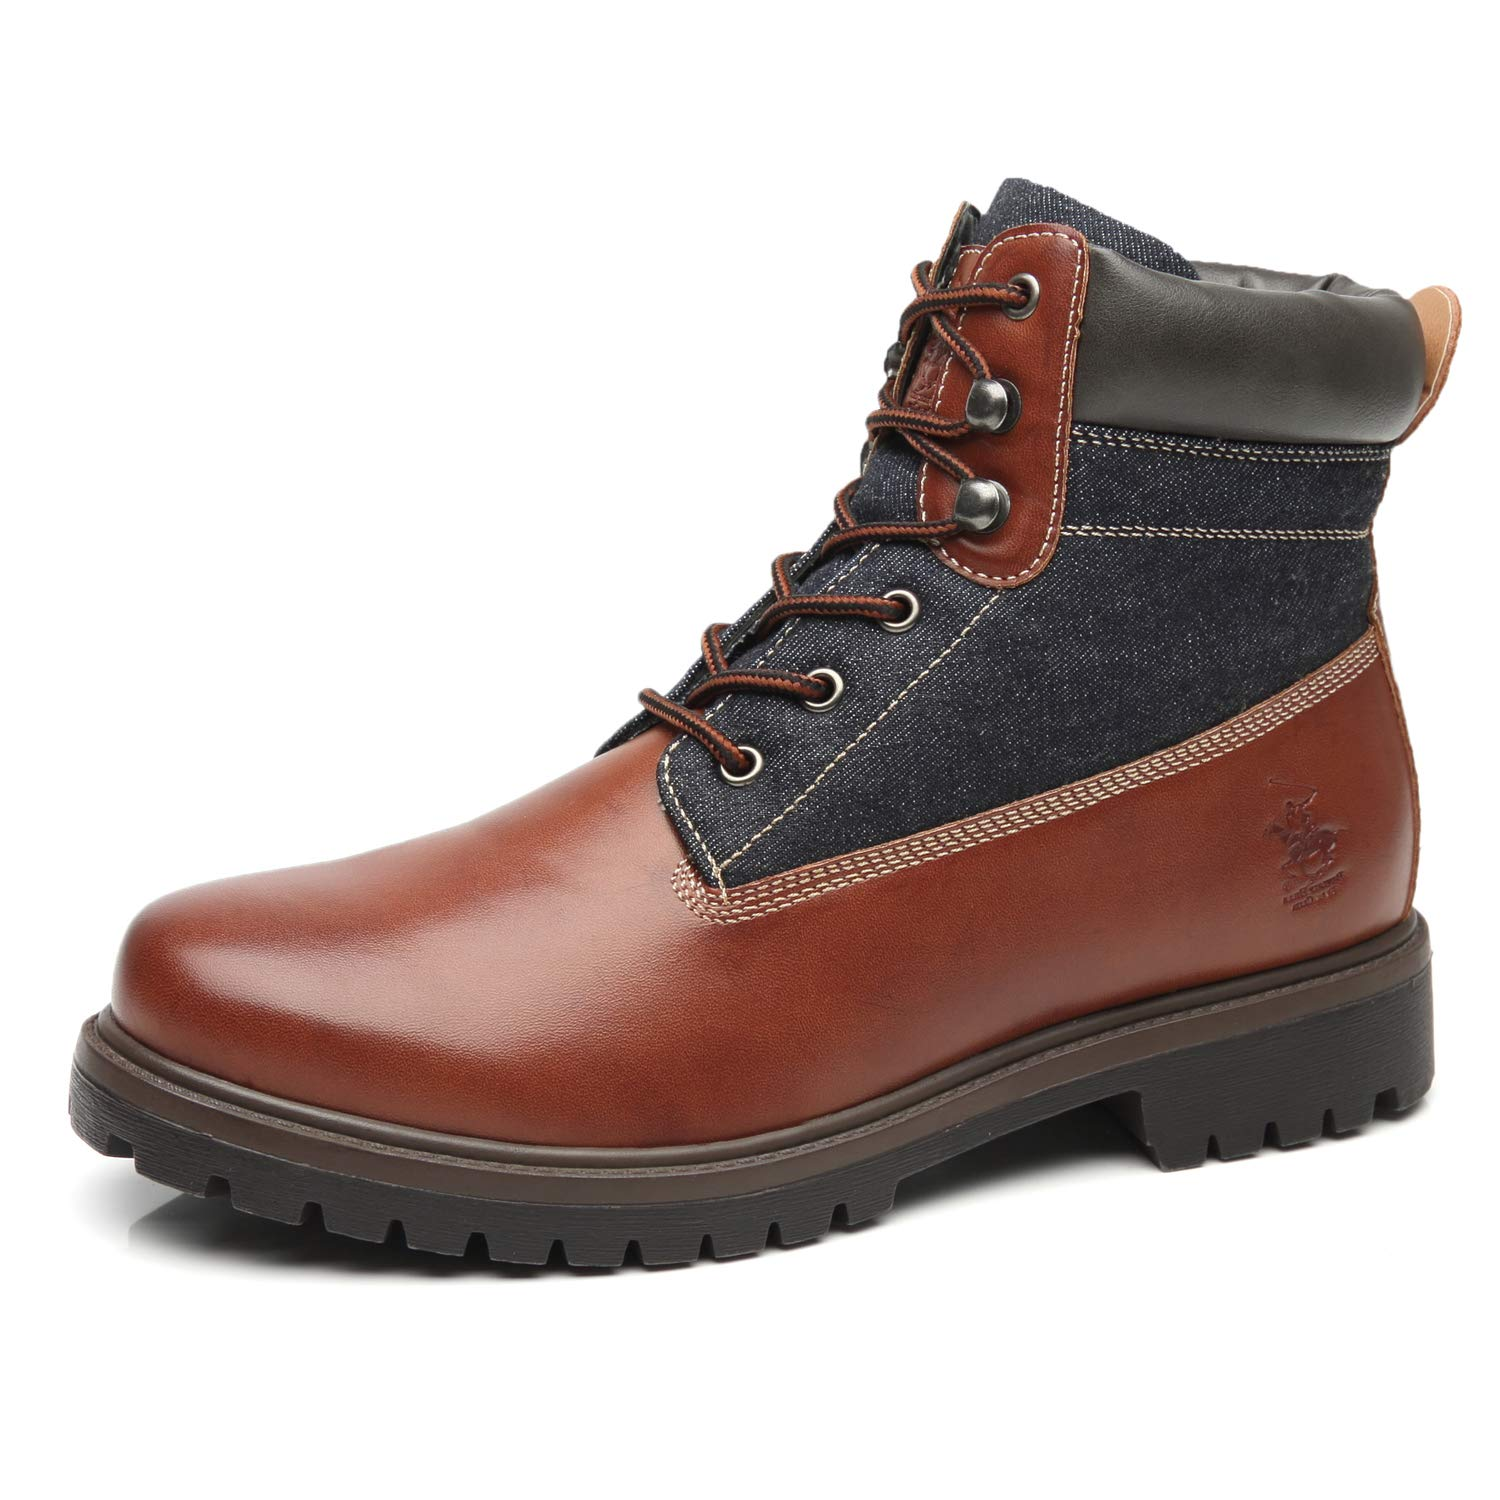 shop get new online for sale Beverly Hills Polo Club Men's Snow Winter Lace Up Boots Casual Comfortable  Dress Boots for Men